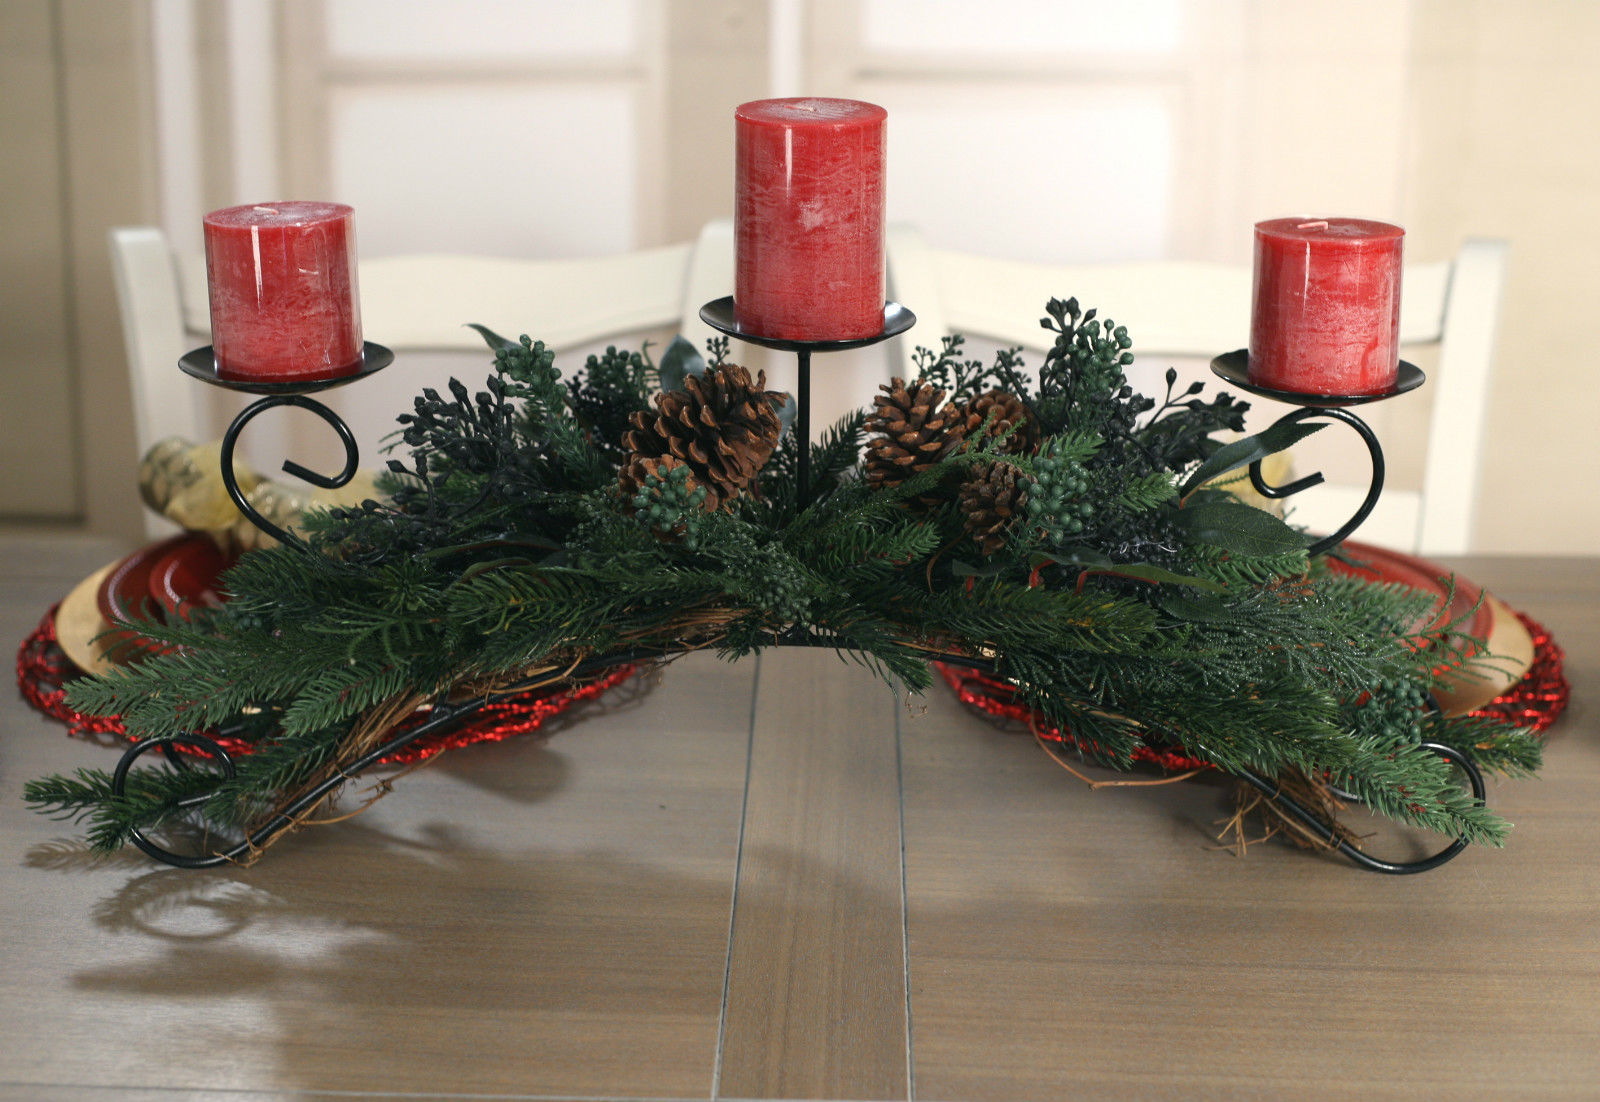 Christmas Candle Holder Table Centre Decor Pine Xmas Decoration 3 Cand Buffet And Hutch